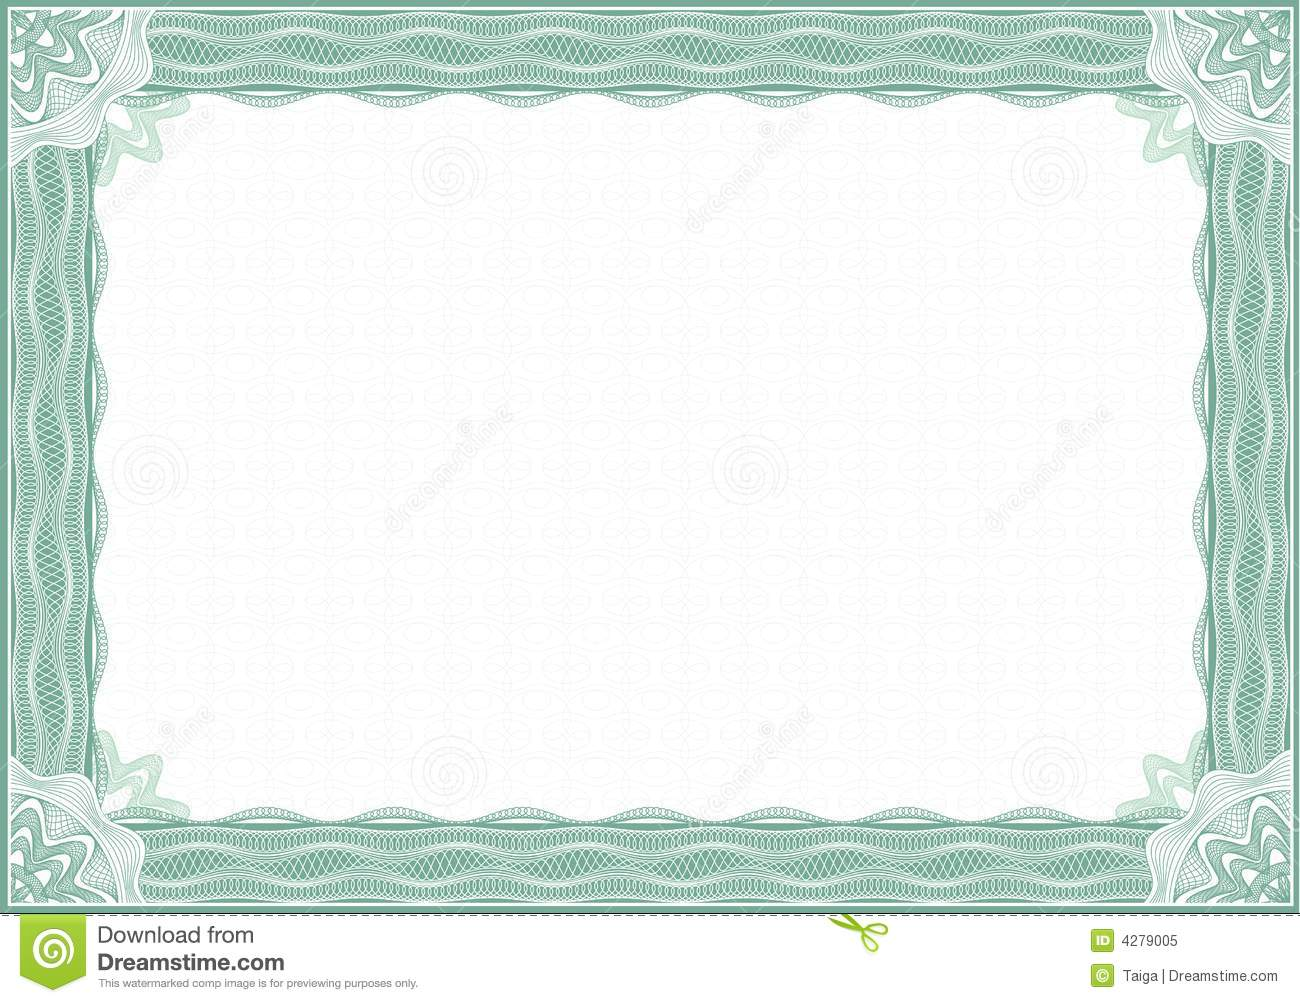 Guilloche Border For Diploma Or Certificate Illustration 4279005